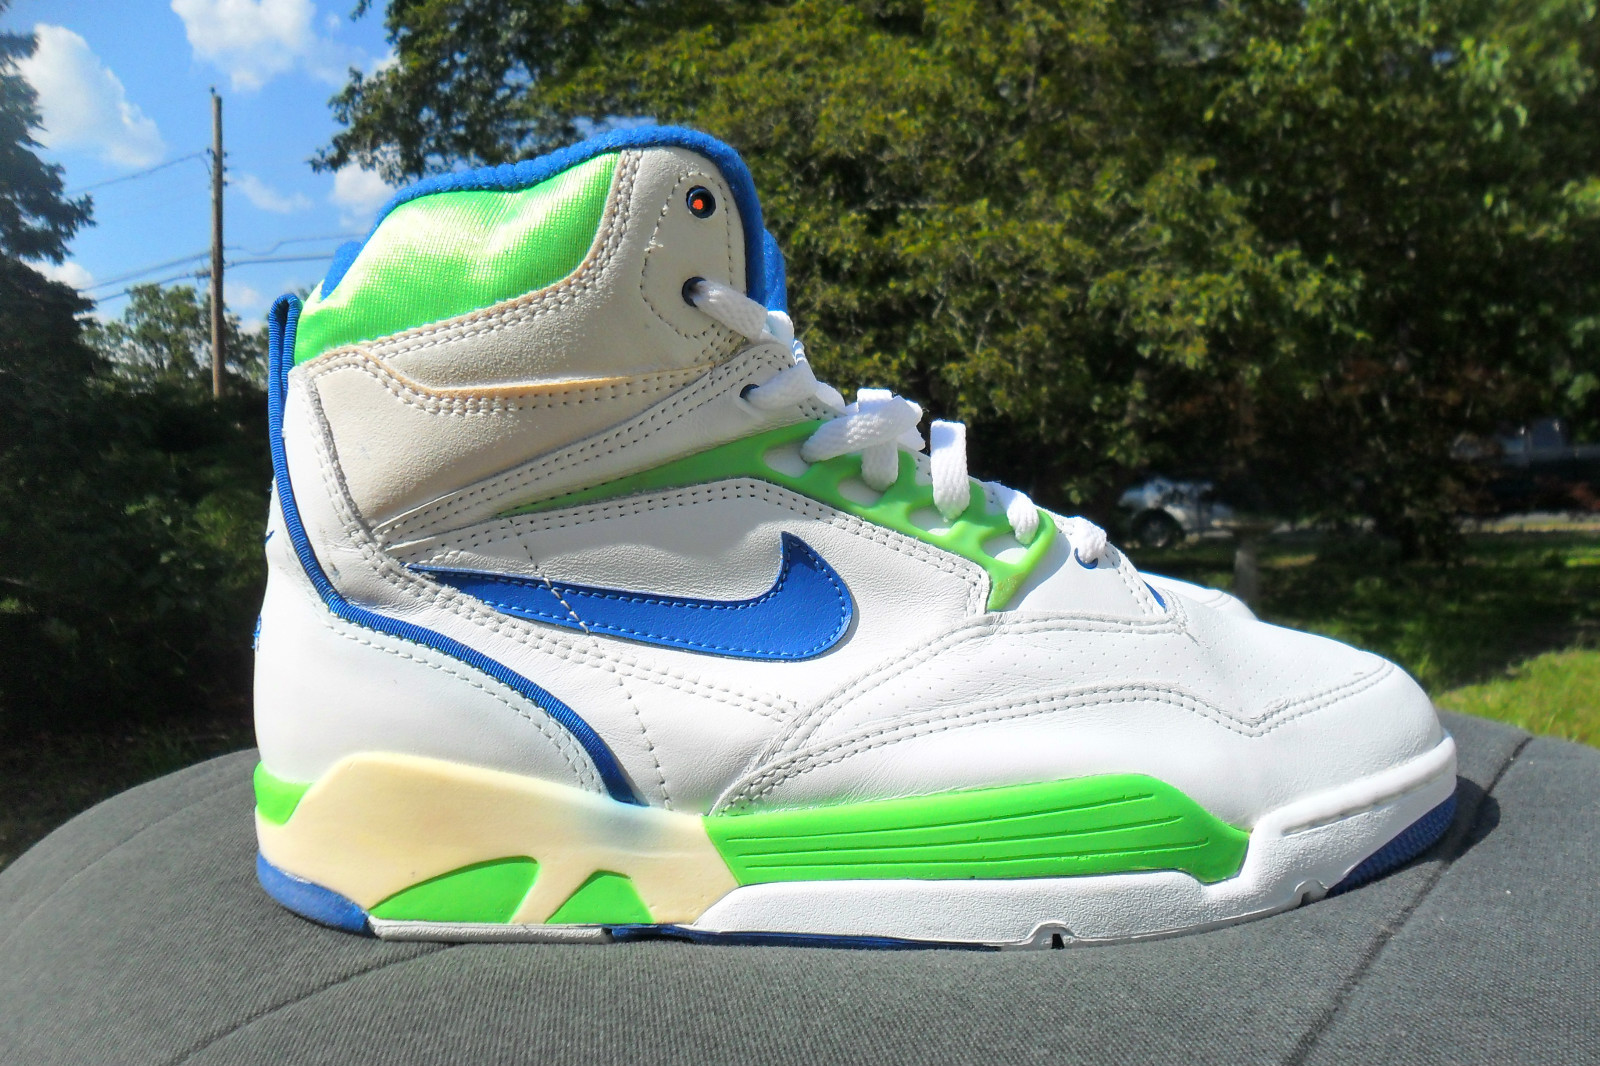 Check out this week's selection of rare sneaker finds from eBay.